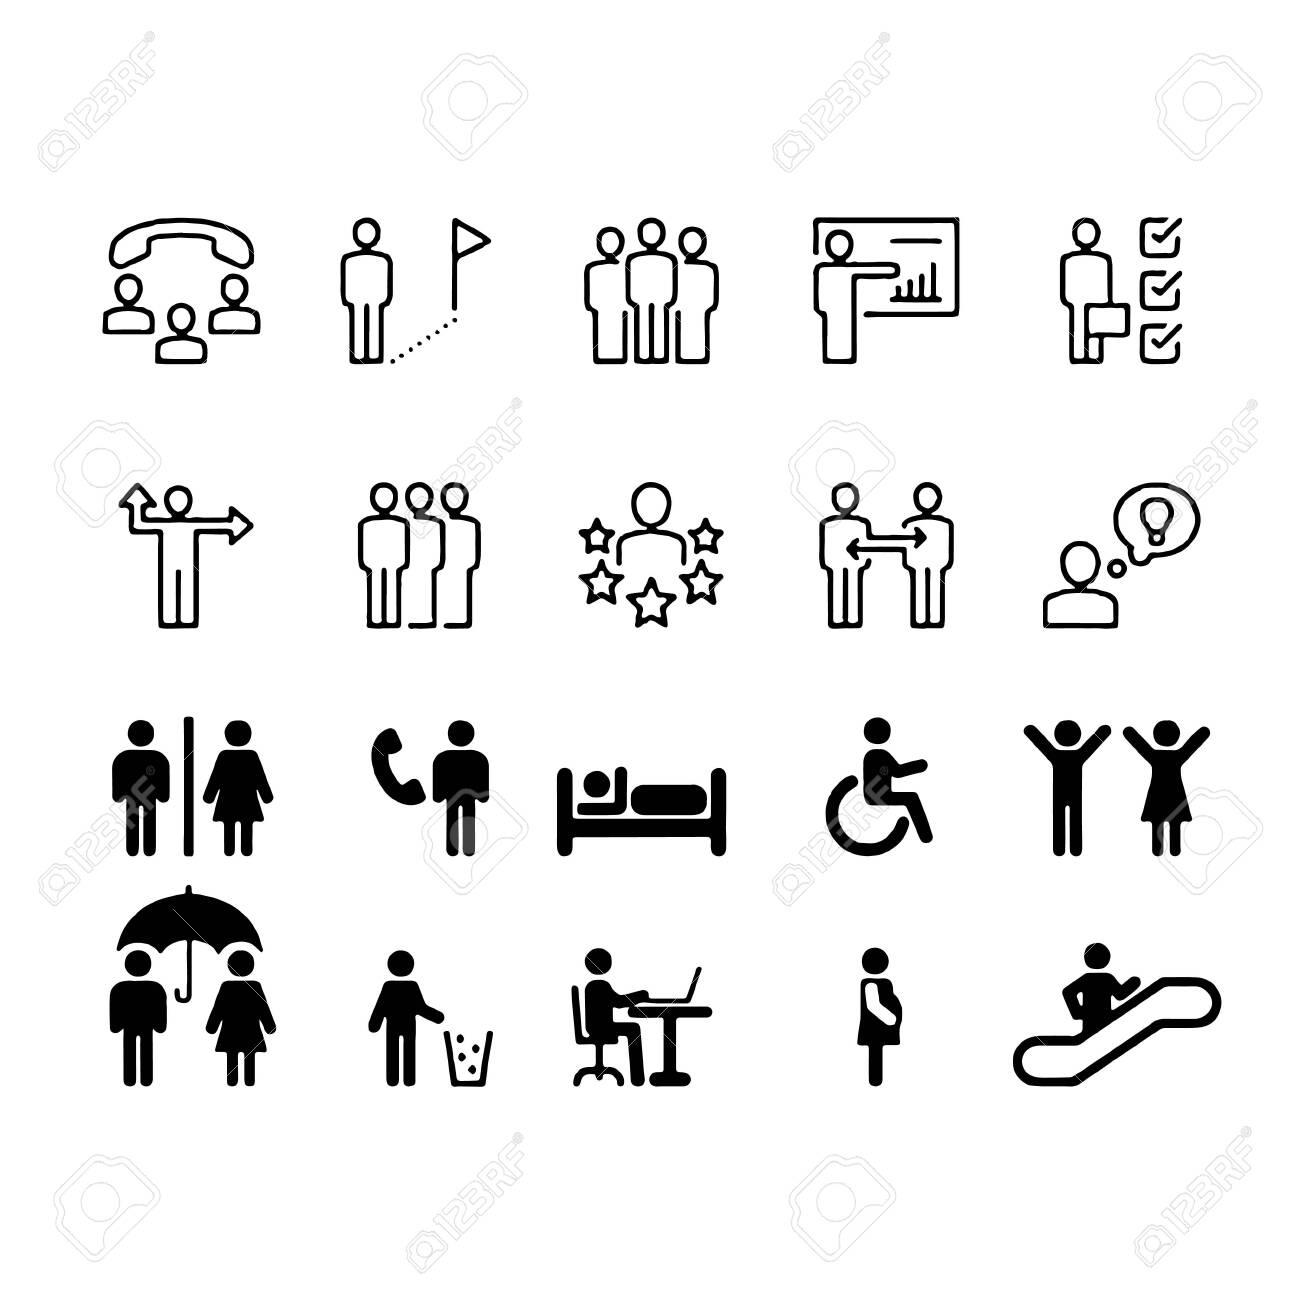 Simple Set of Business People Related Vector Line Icons. Contains such Icons as One-on-One Meeting, Workplace, Business Communication - 152037493